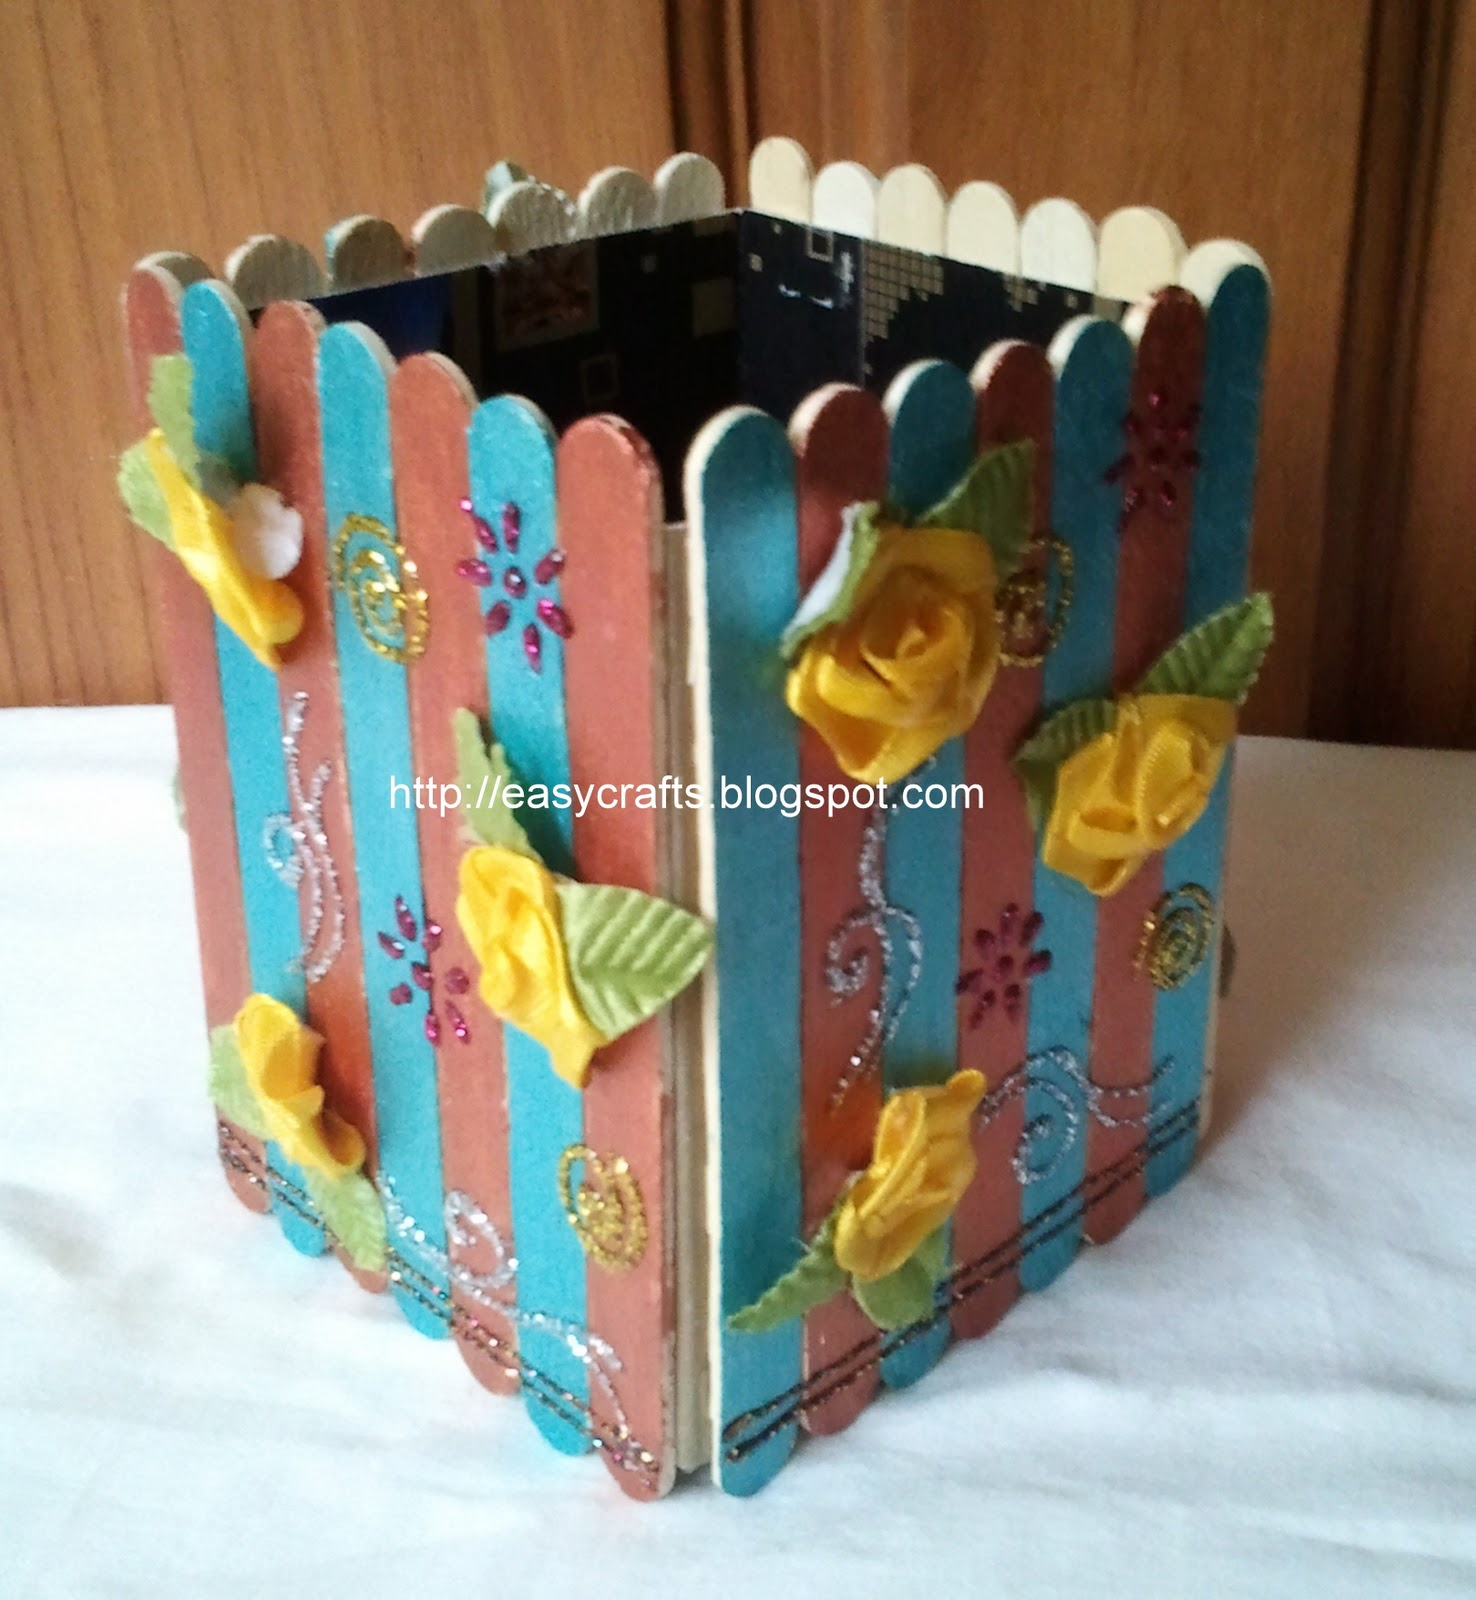 Best out of waste ideas from ice cream stick